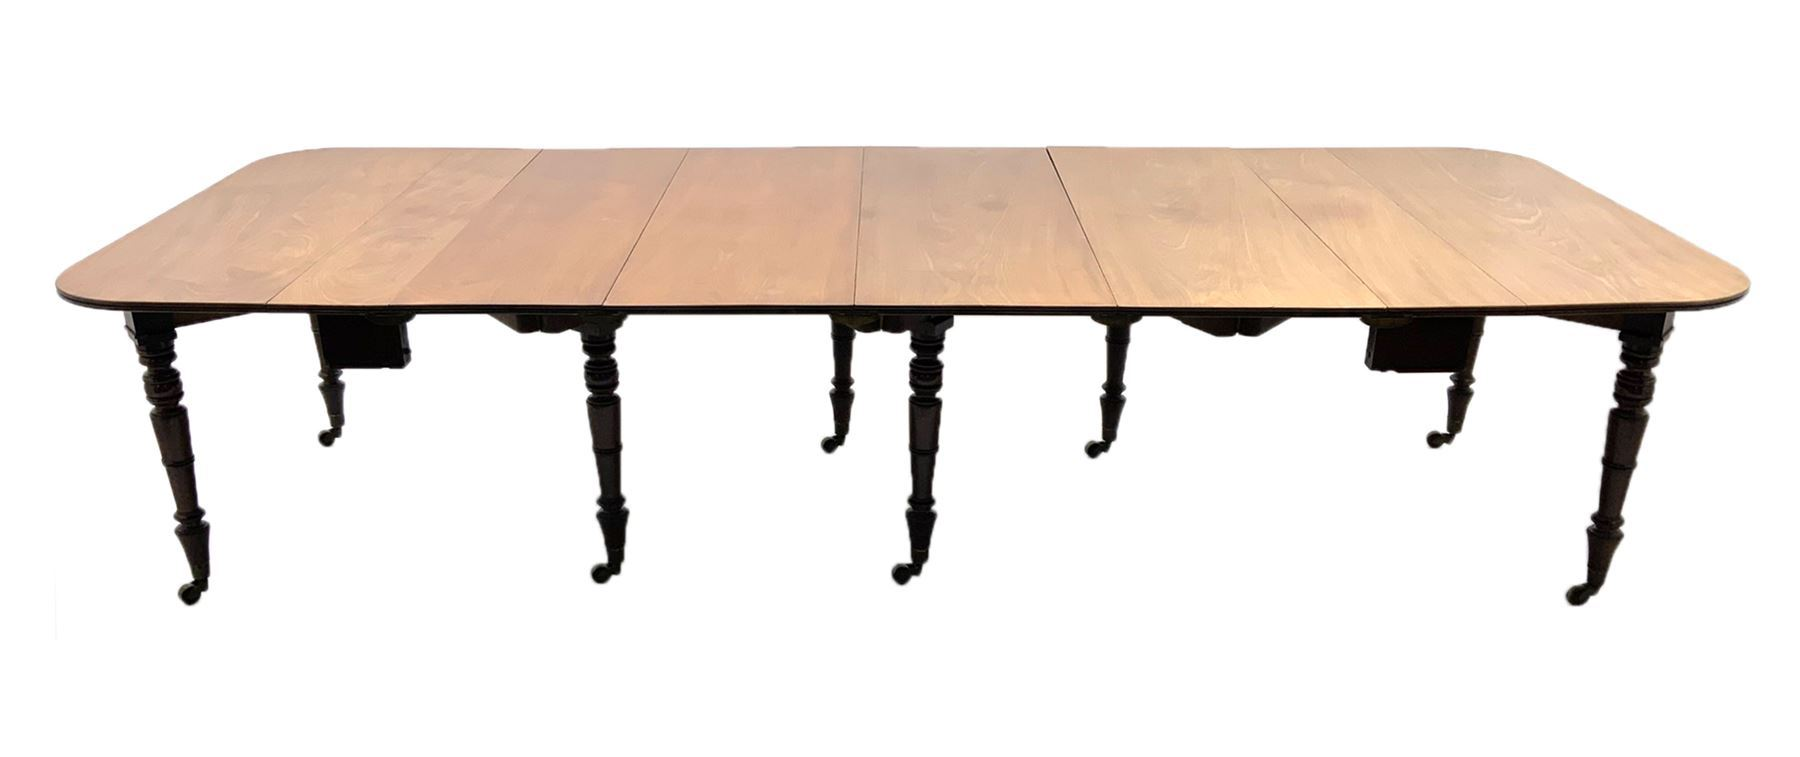 George III mahogany extending dining table - Image 2 of 6